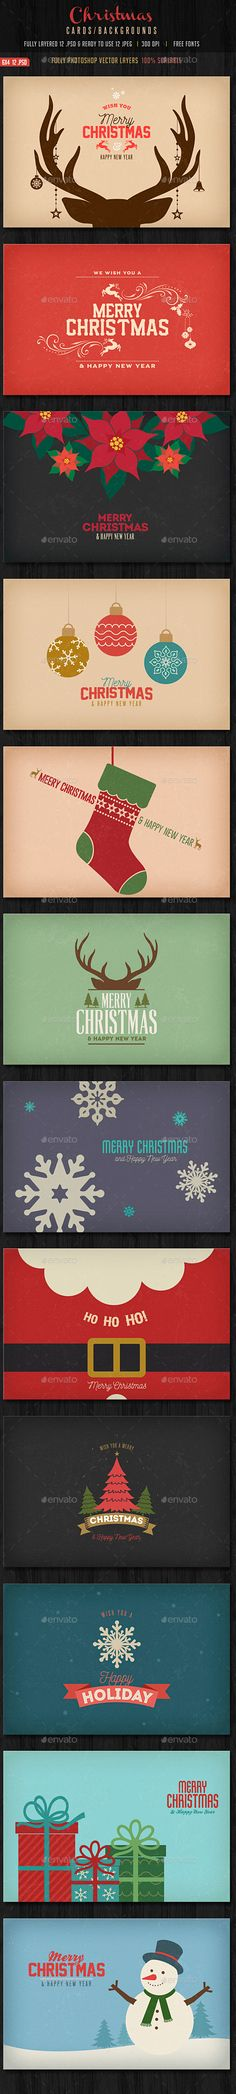 Vintage Christmas Backgrounds / Cards — Photoshop PSD #Vintage Christmas Card #Christmas poster • Available here → https://graphicriver.net/item/vintage-christmas-backgrounds-cards/13759674?ref=pxcr